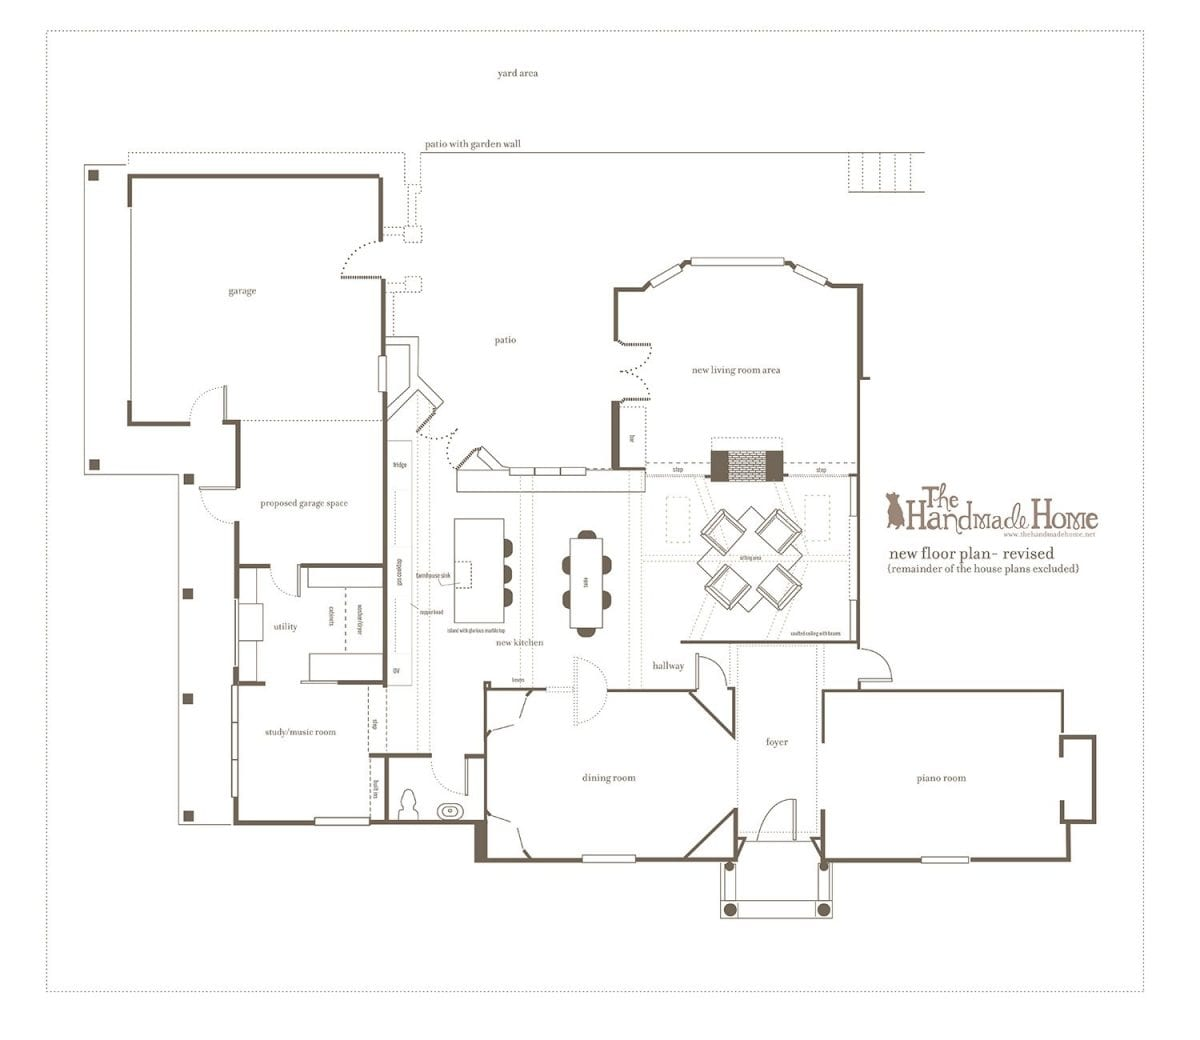 Home alone 1 house plan for Home alone house floor plan